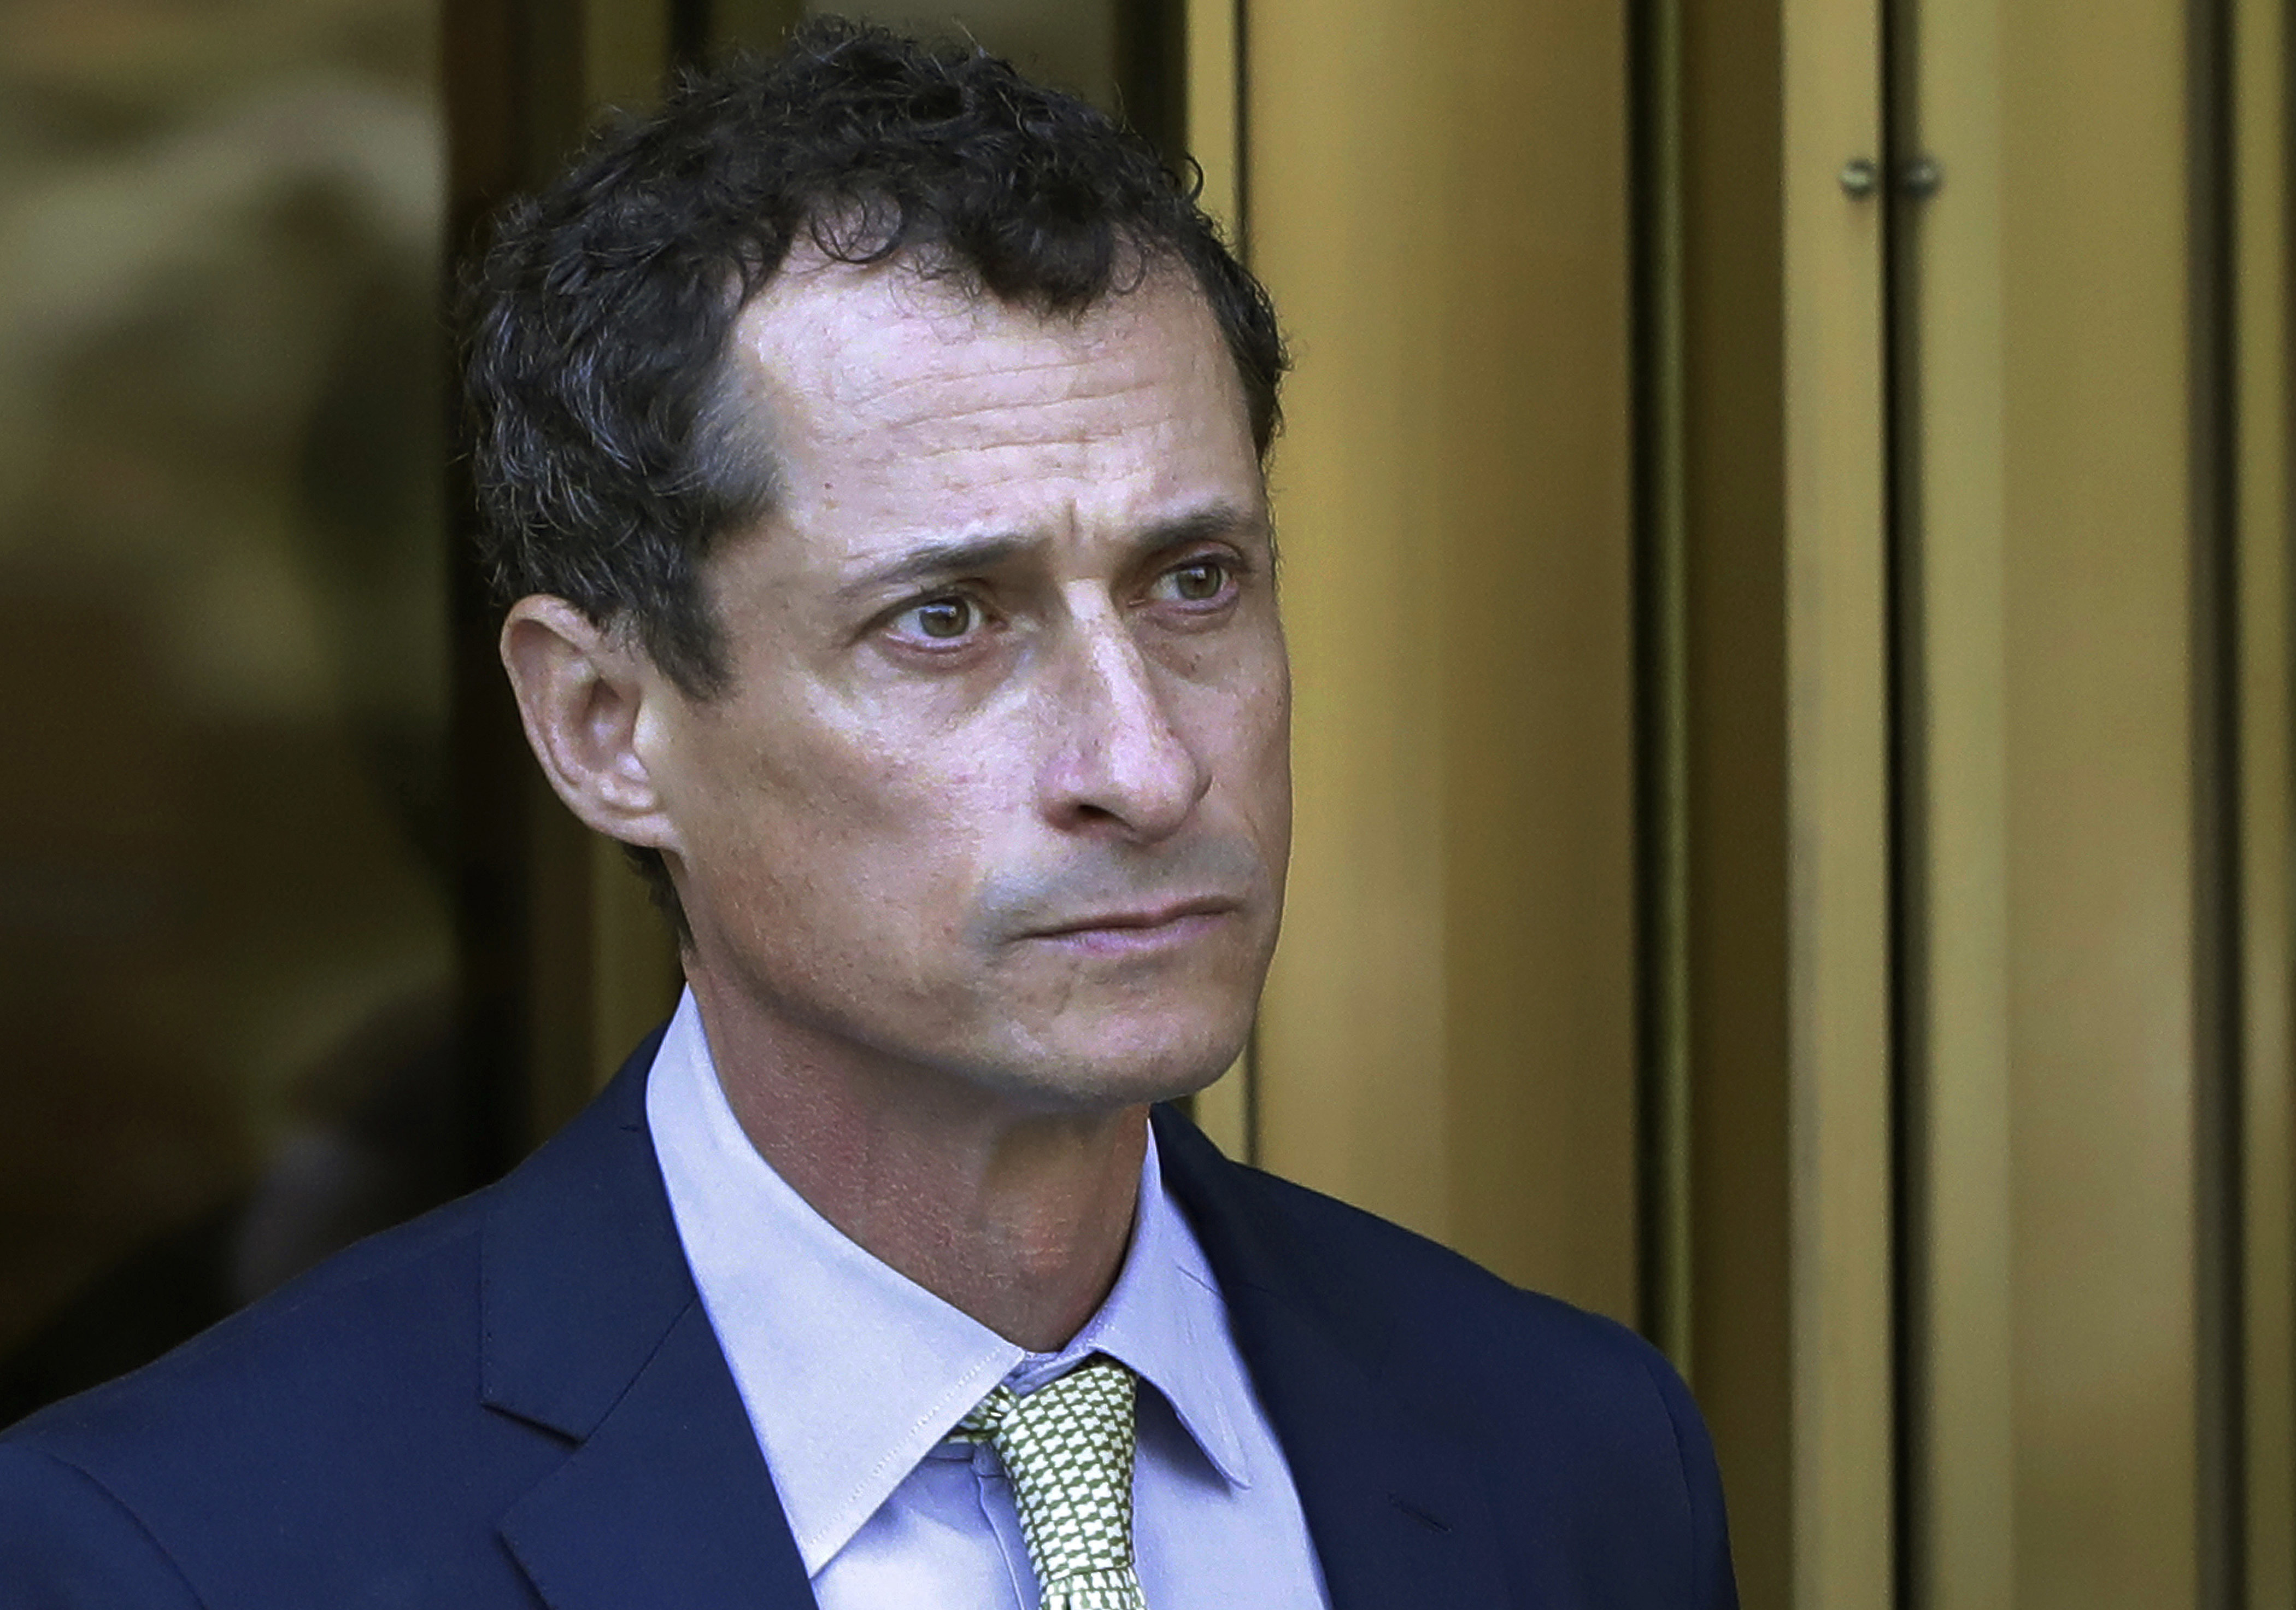 FILE - In this Sept. 25, 2017 file photo, former Congressman Anthony Weiner leaves federal court following his sentencing in New York. Weiner is set to report to the Federal Medical Center, Devens, Mass., Monday, Nov. 6, 2017, to serve his prison sentence in a sexting case that rocked the presidential race. (AP Photo/Mark Lennihan, File)